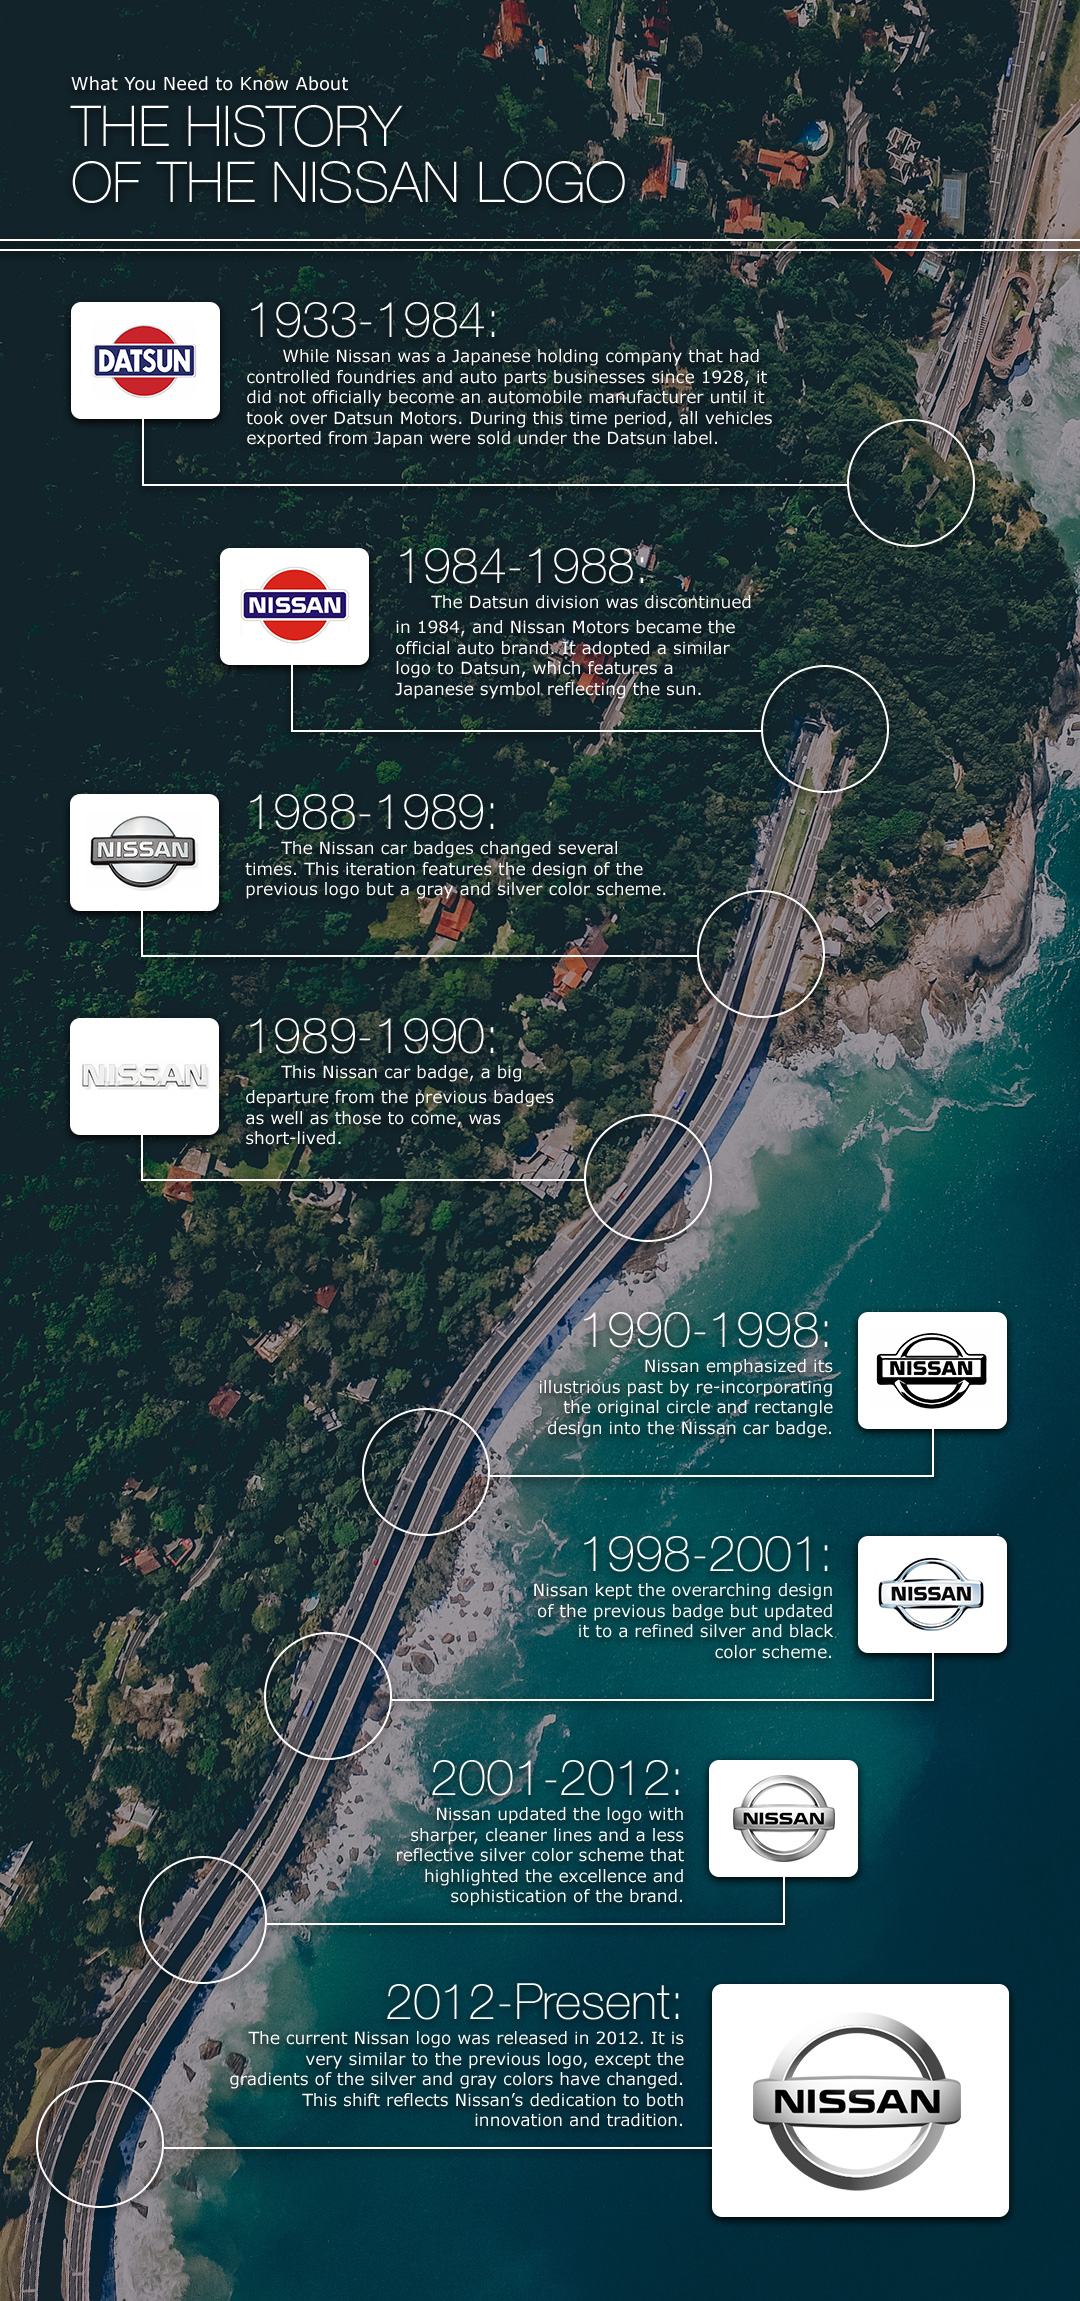 A timeline infographic showing the history of the Nissan logo.